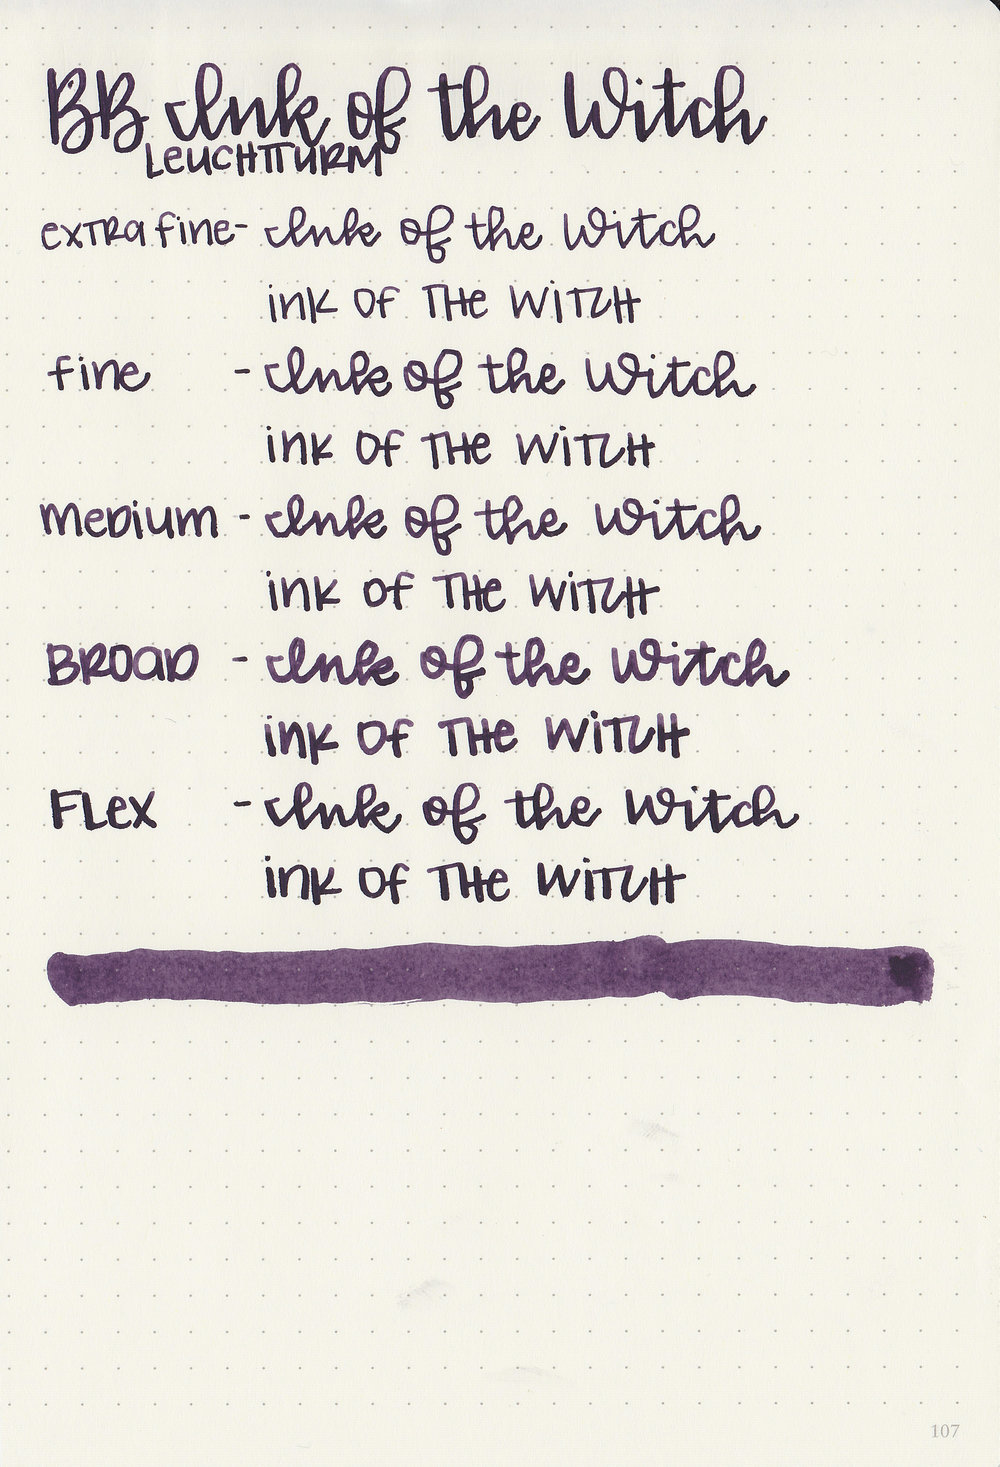 bb-ink-of-the-witch-14.jpg